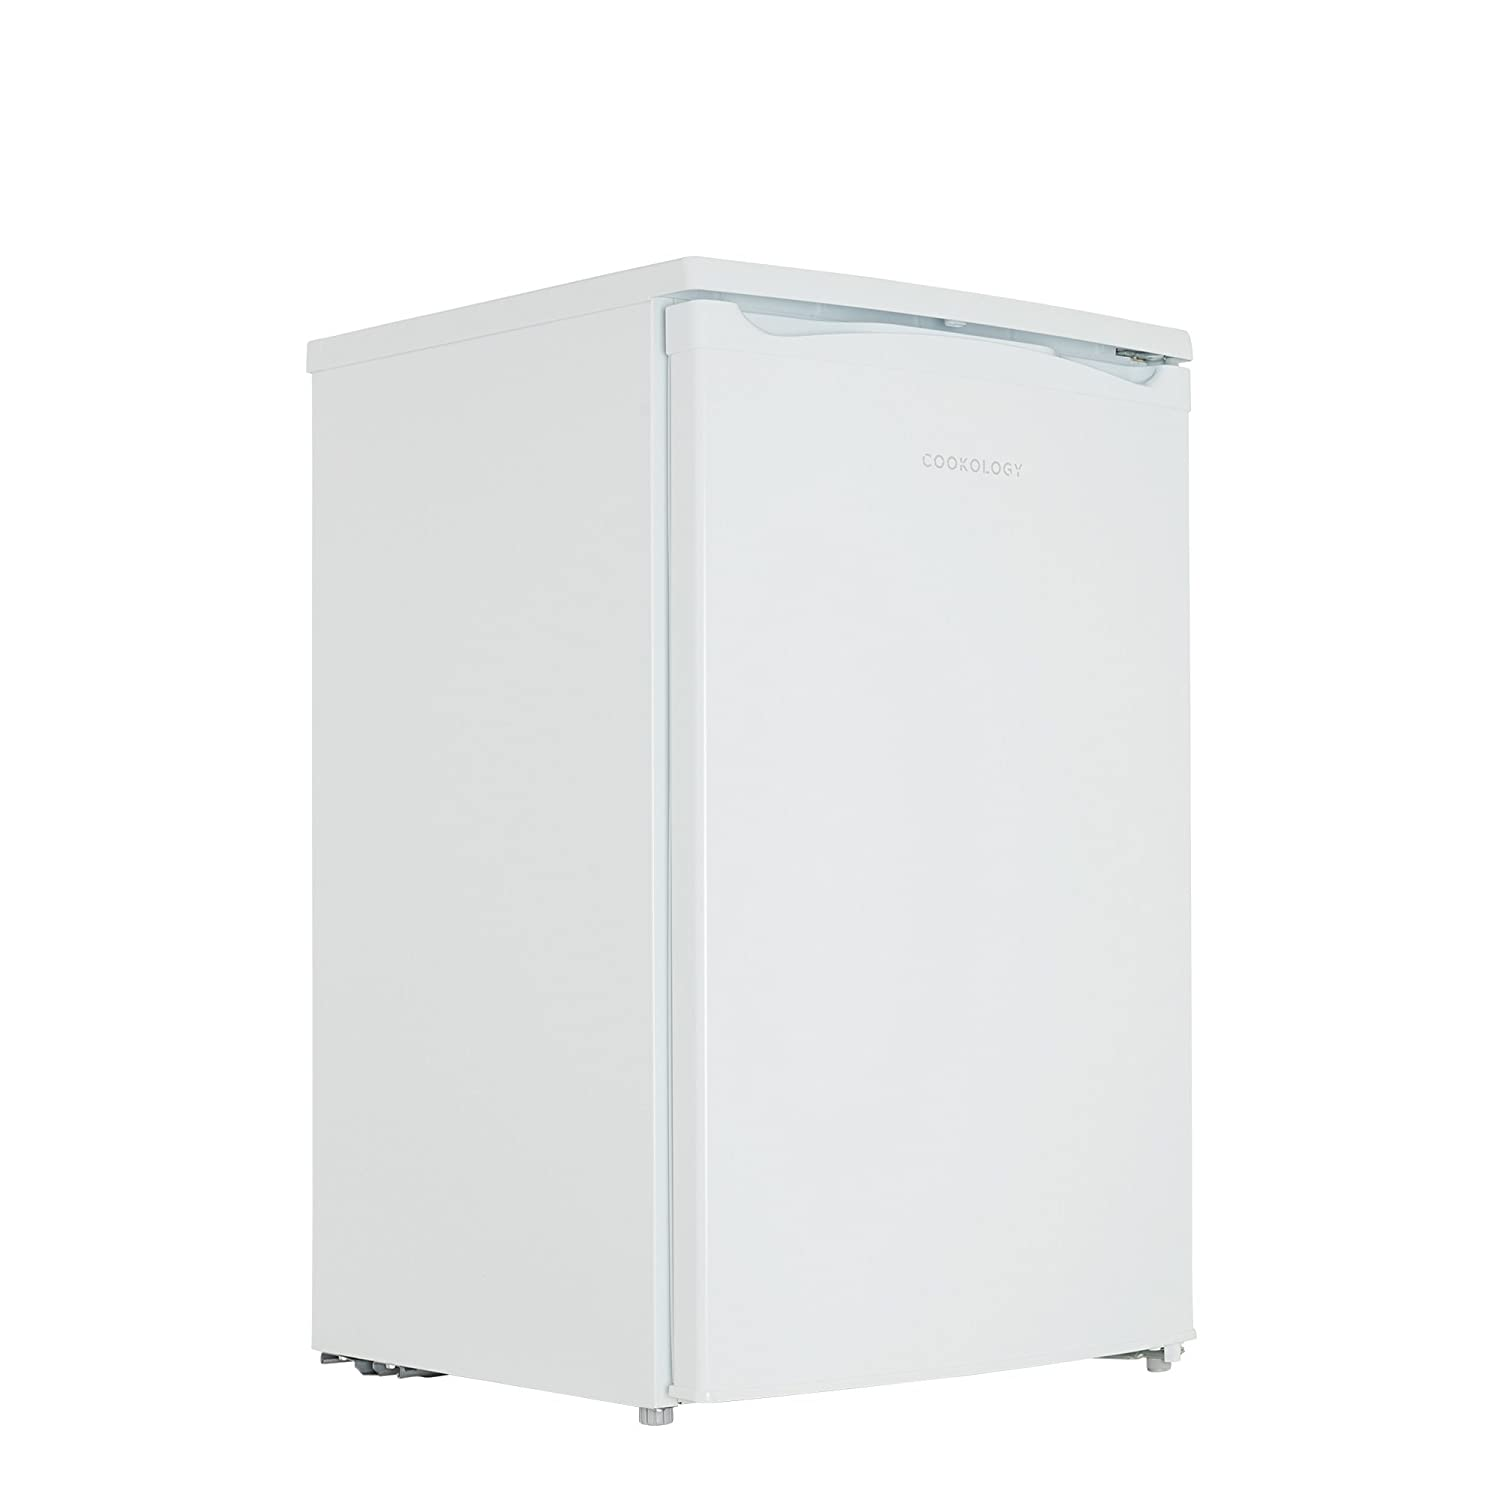 Cookology UCFZ68WH 50cm Freestanding Undercounter Freezer in White, 68 Litre [Energy Class A+]